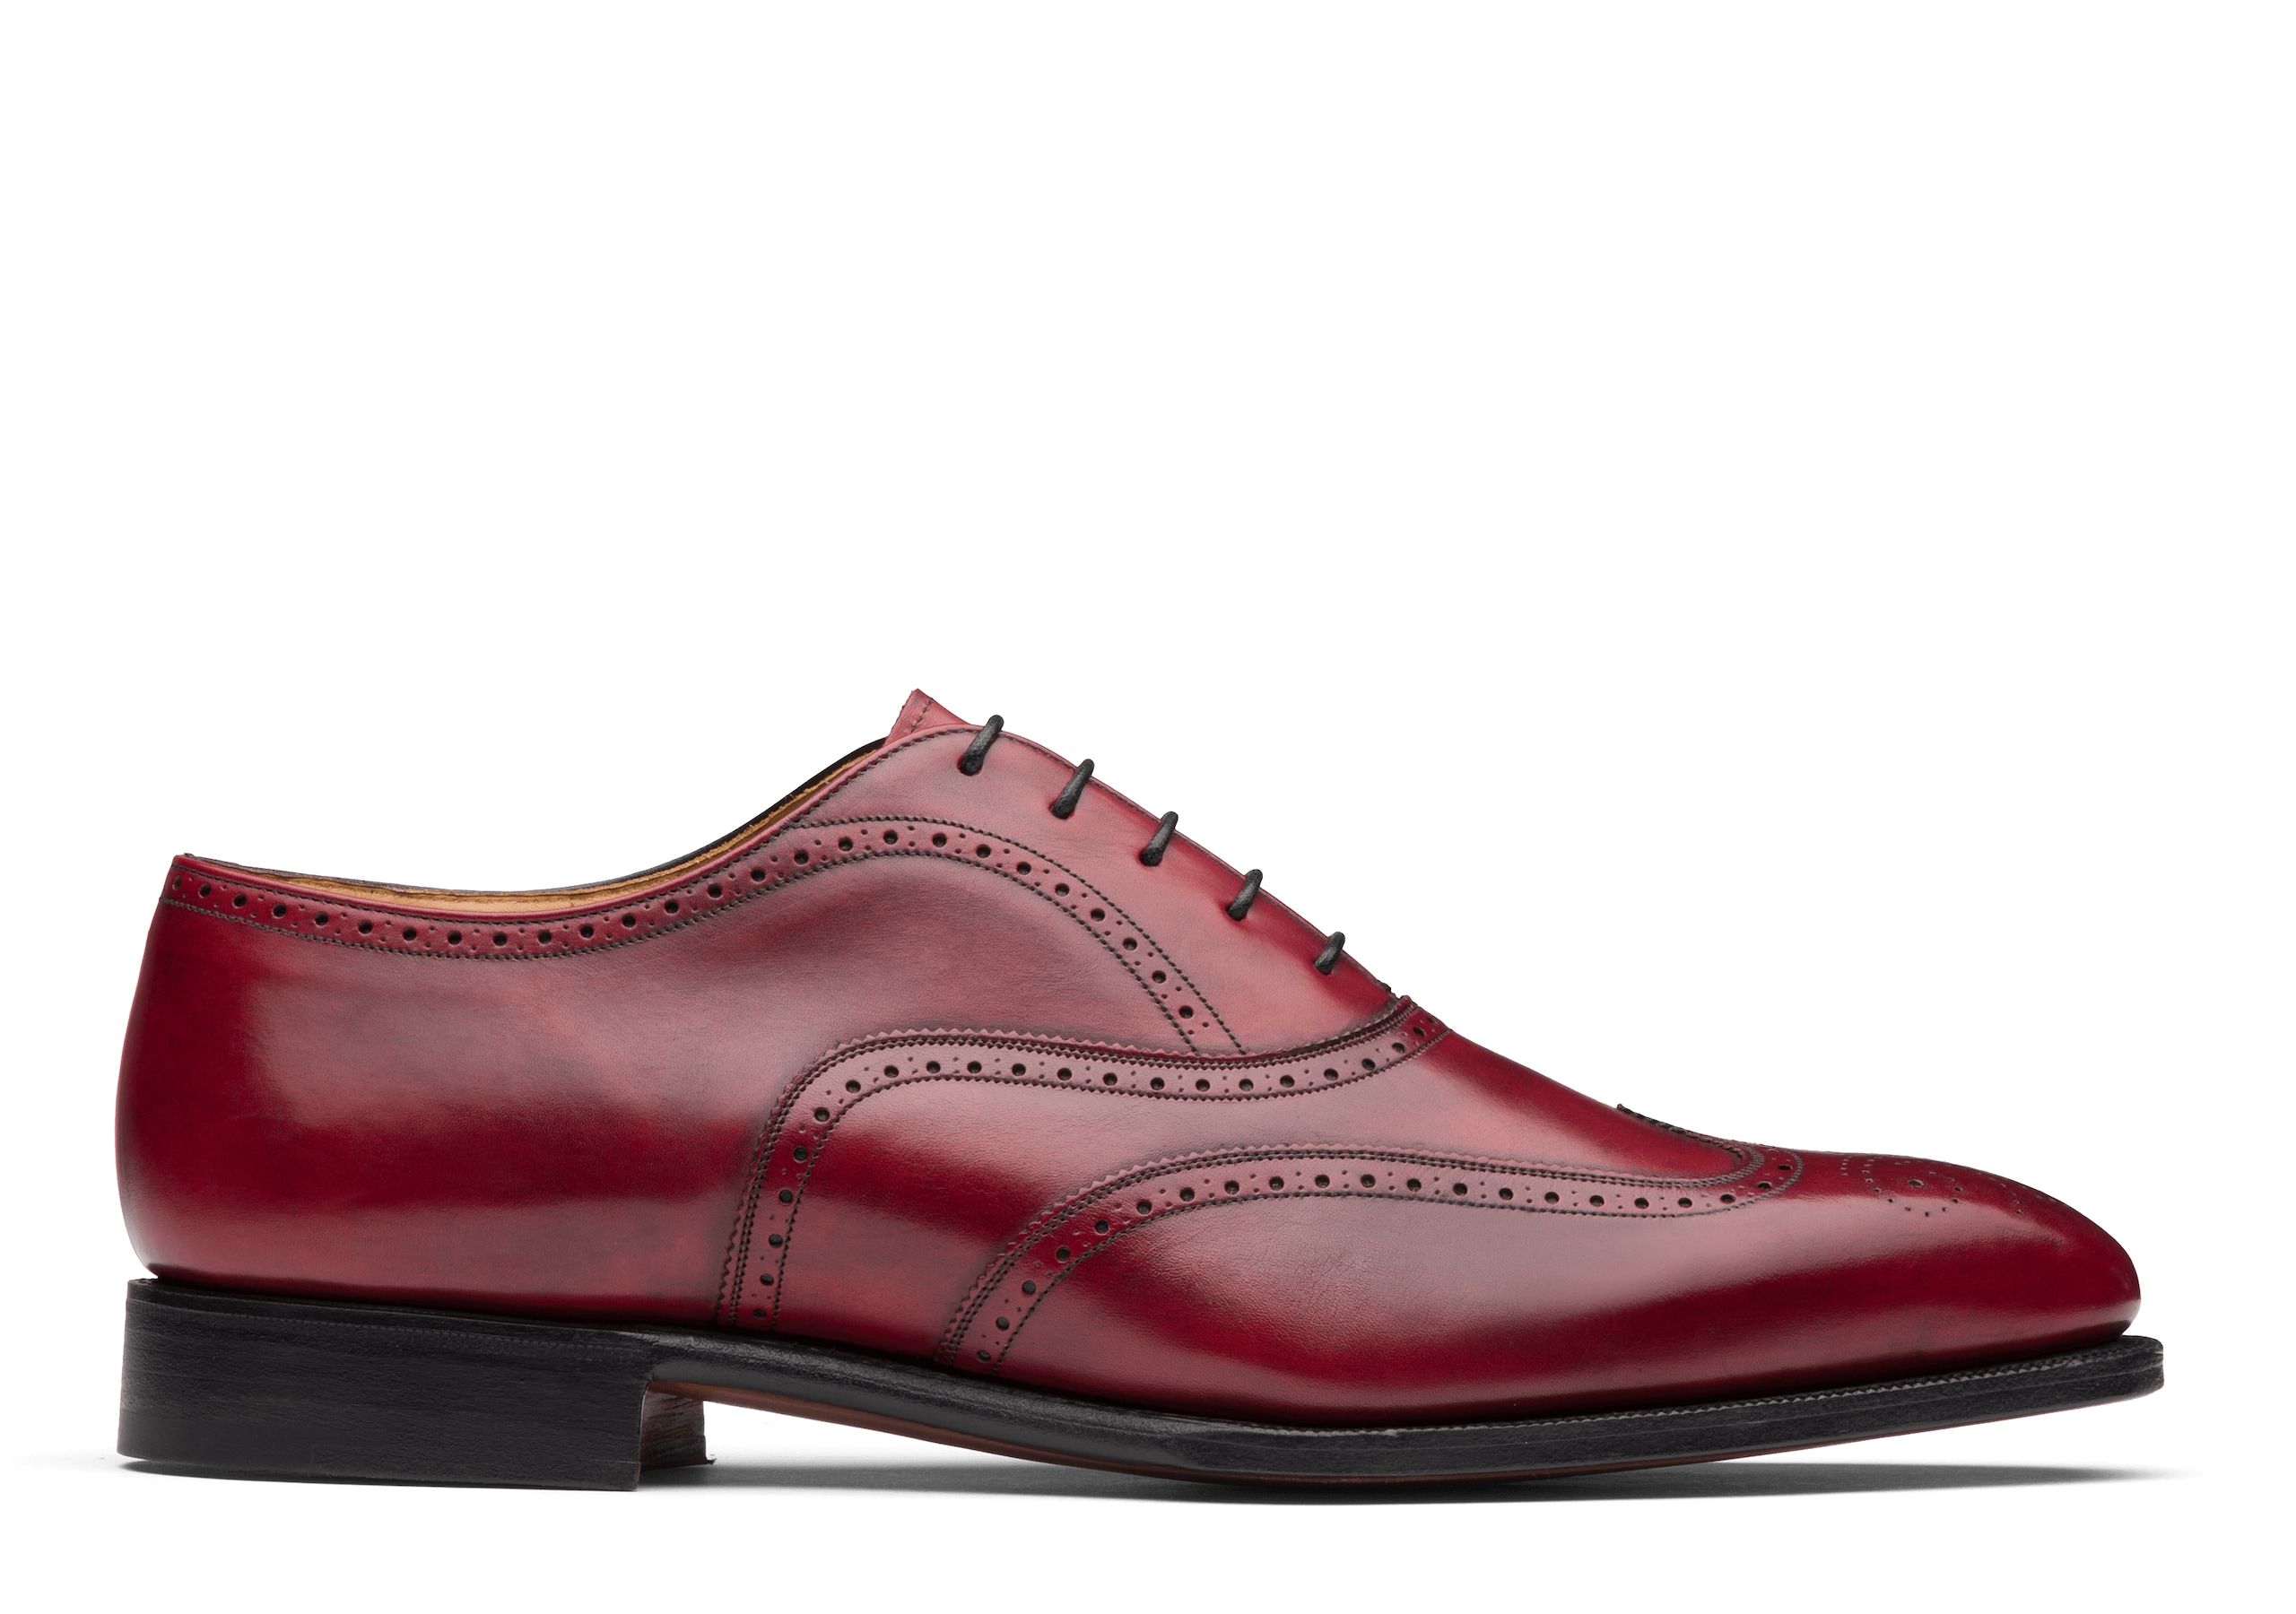 Carrol Church's Doha Leather Oxford Brogue Light tan Pink